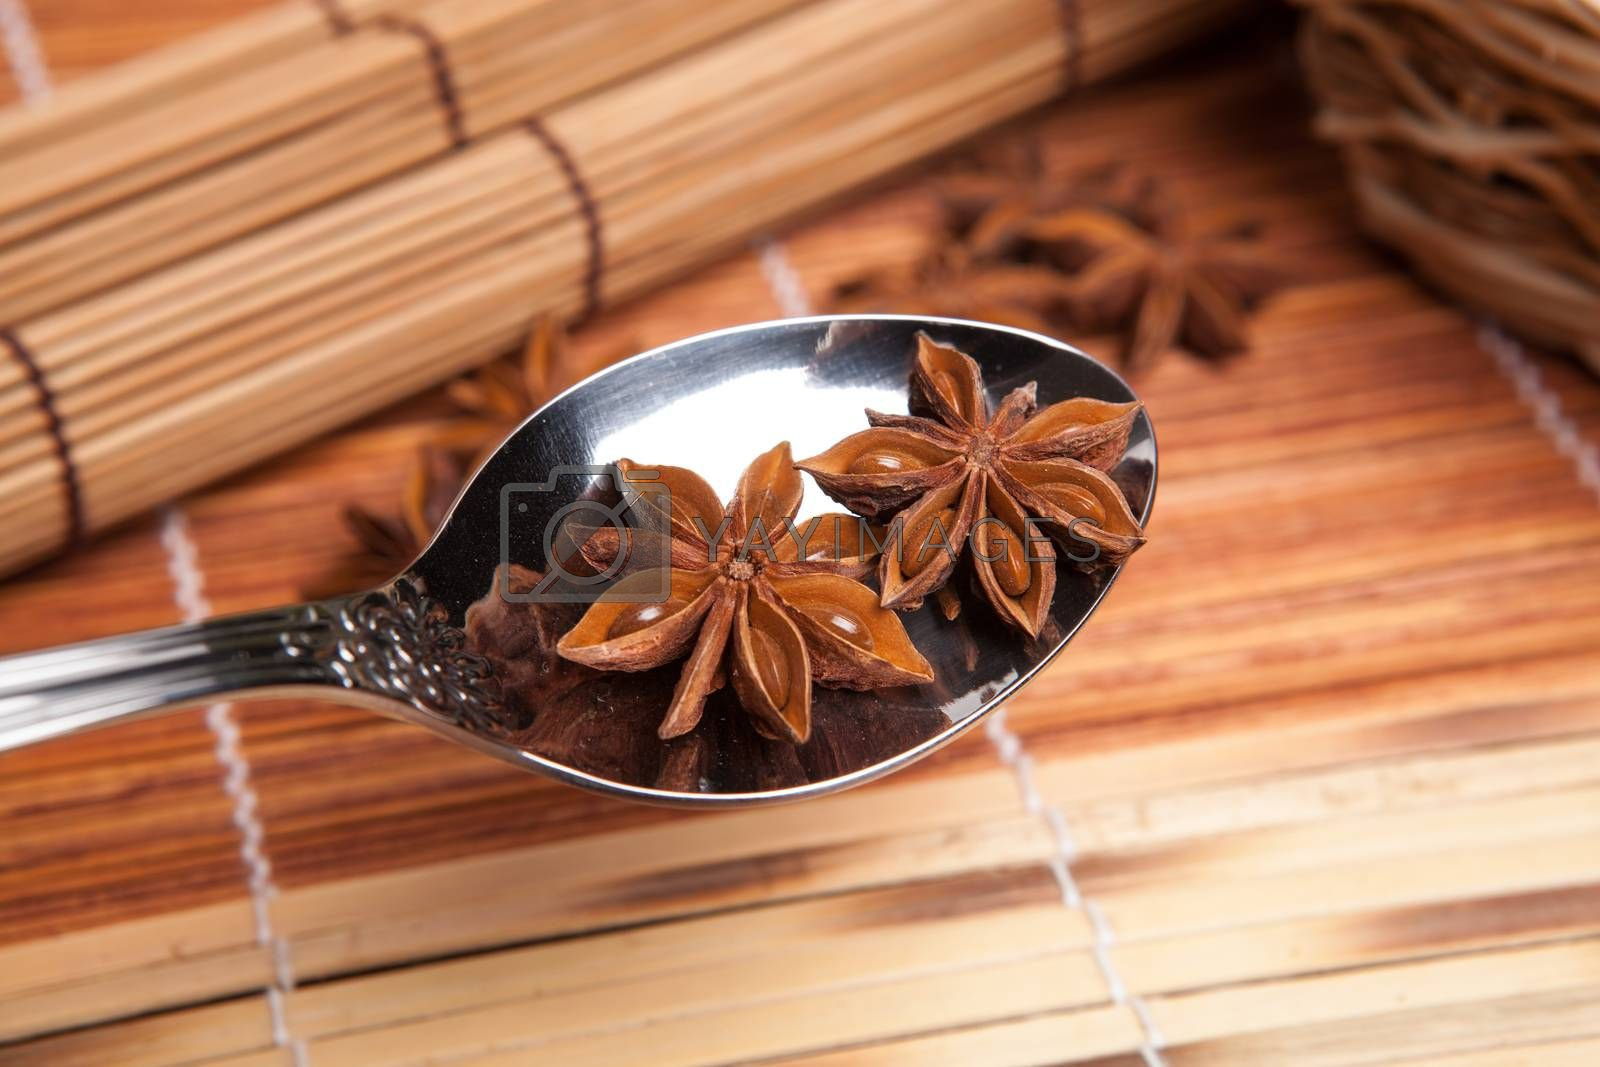 Royalty free image of two stars of anise in a spoon by mizar_21984